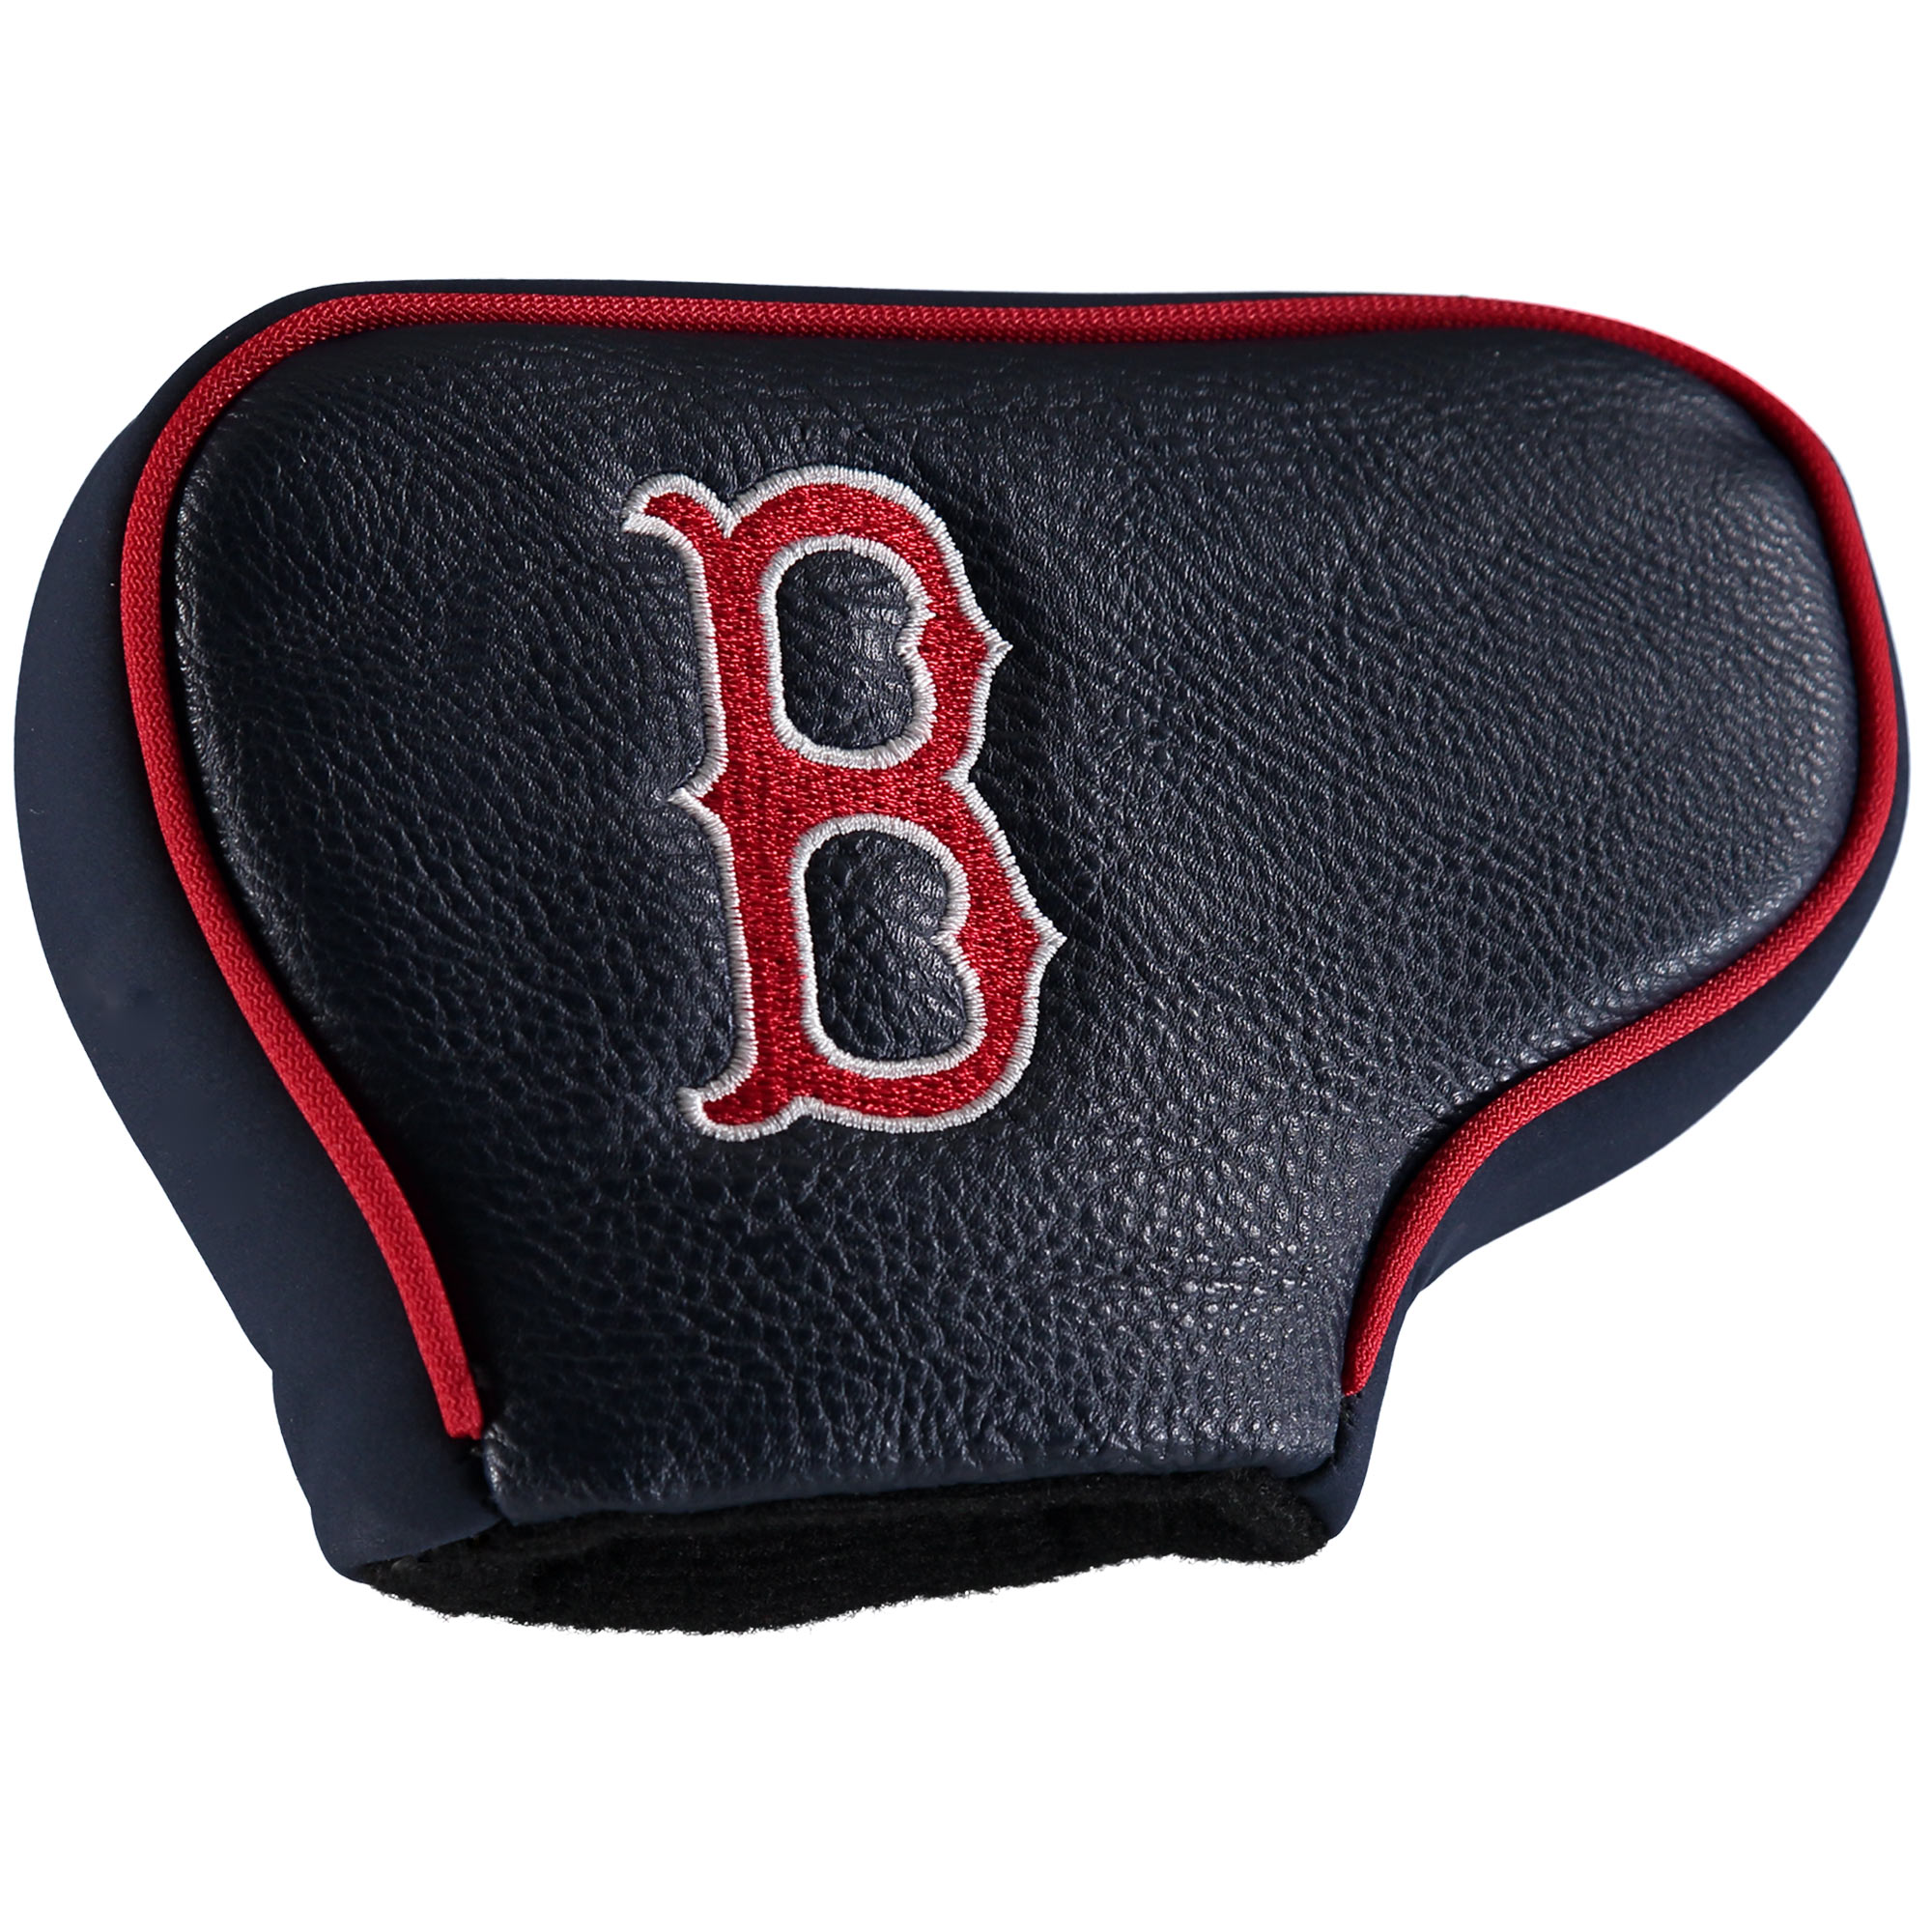 Boston Red Sox Golf Blade Putter Cover